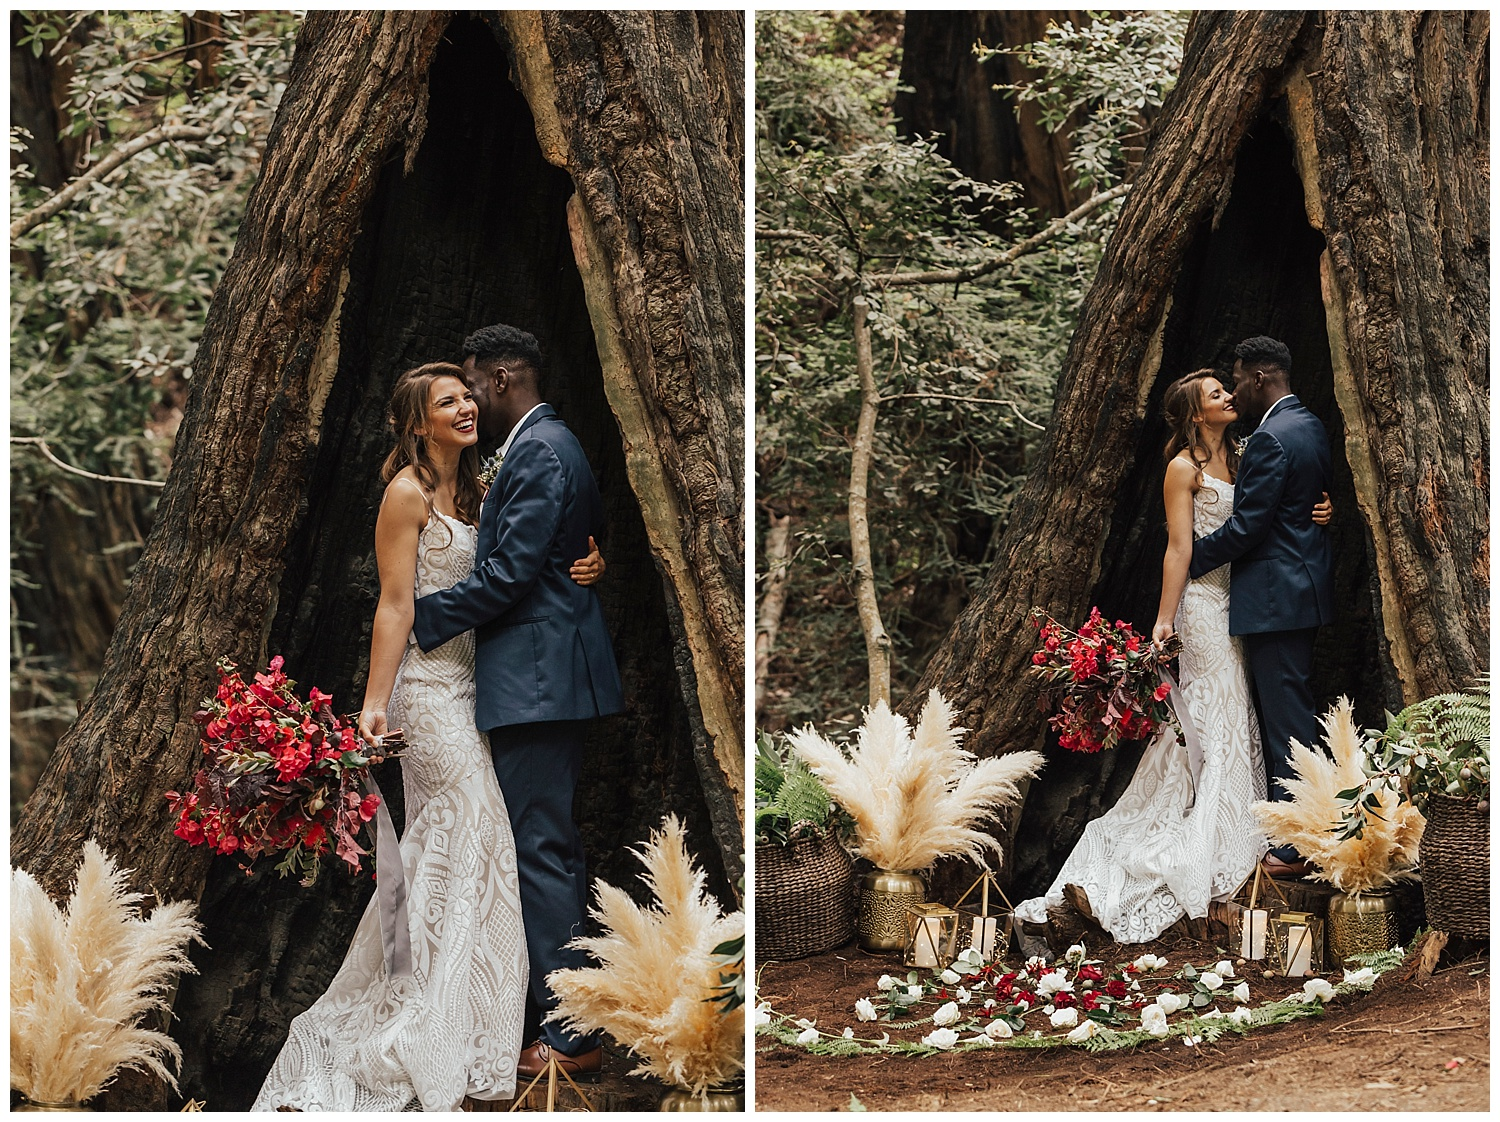 Big-sur-wedding-portrait-woods-boho-bride-inspiration-redwoods.jpg